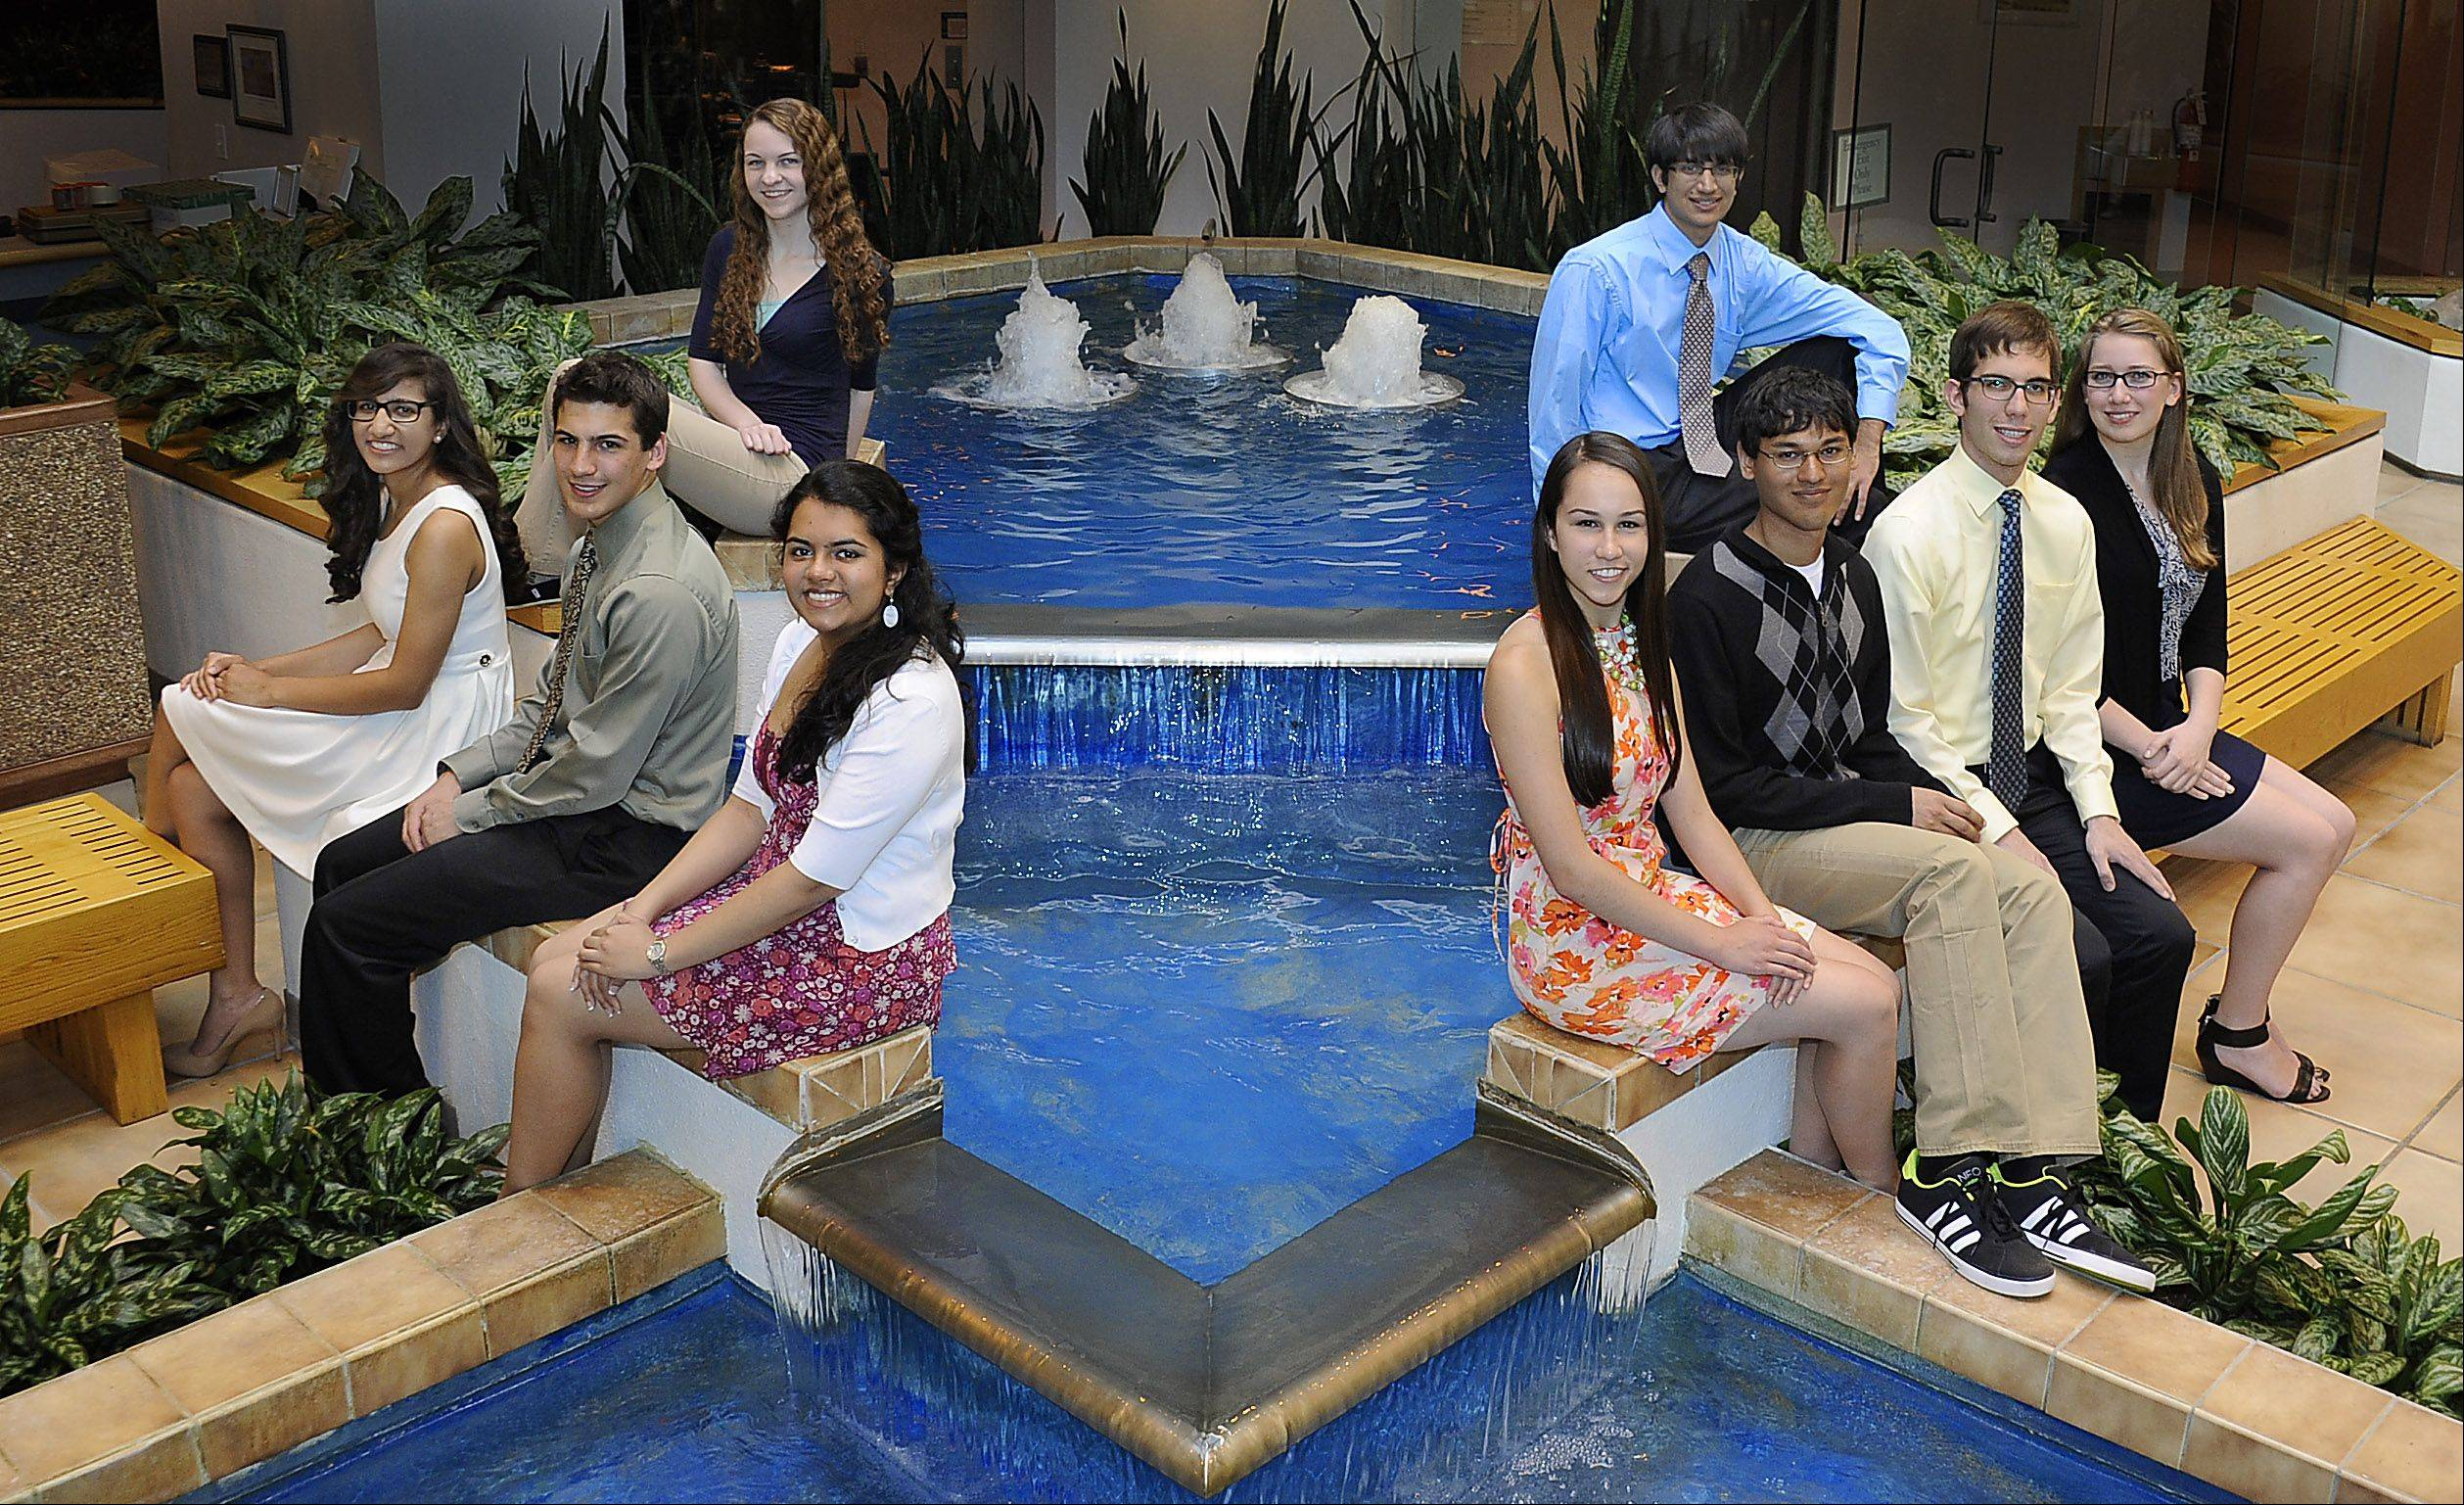 The 2012-2013 Northwest Suburban Academic team members. Top row, from left: Megan Rullo, Buffalo Grove High School, and Krush Patel, Hoffman Estates High School. Front row, from left: Sarah Merchant, Barrington High School; Thomas Palcheck, Schaumburg High School; Priyanka Kanal, William Fremd High School; Colleen O'Mahoney, Palatine High School; Vivek Shah, John Hersey High School; Maximilian Rohde, Prospect High School; and Darby Alise Dammeier, Wheeling High School. Not pictured: Benjamin Brissette, Maine West High School.